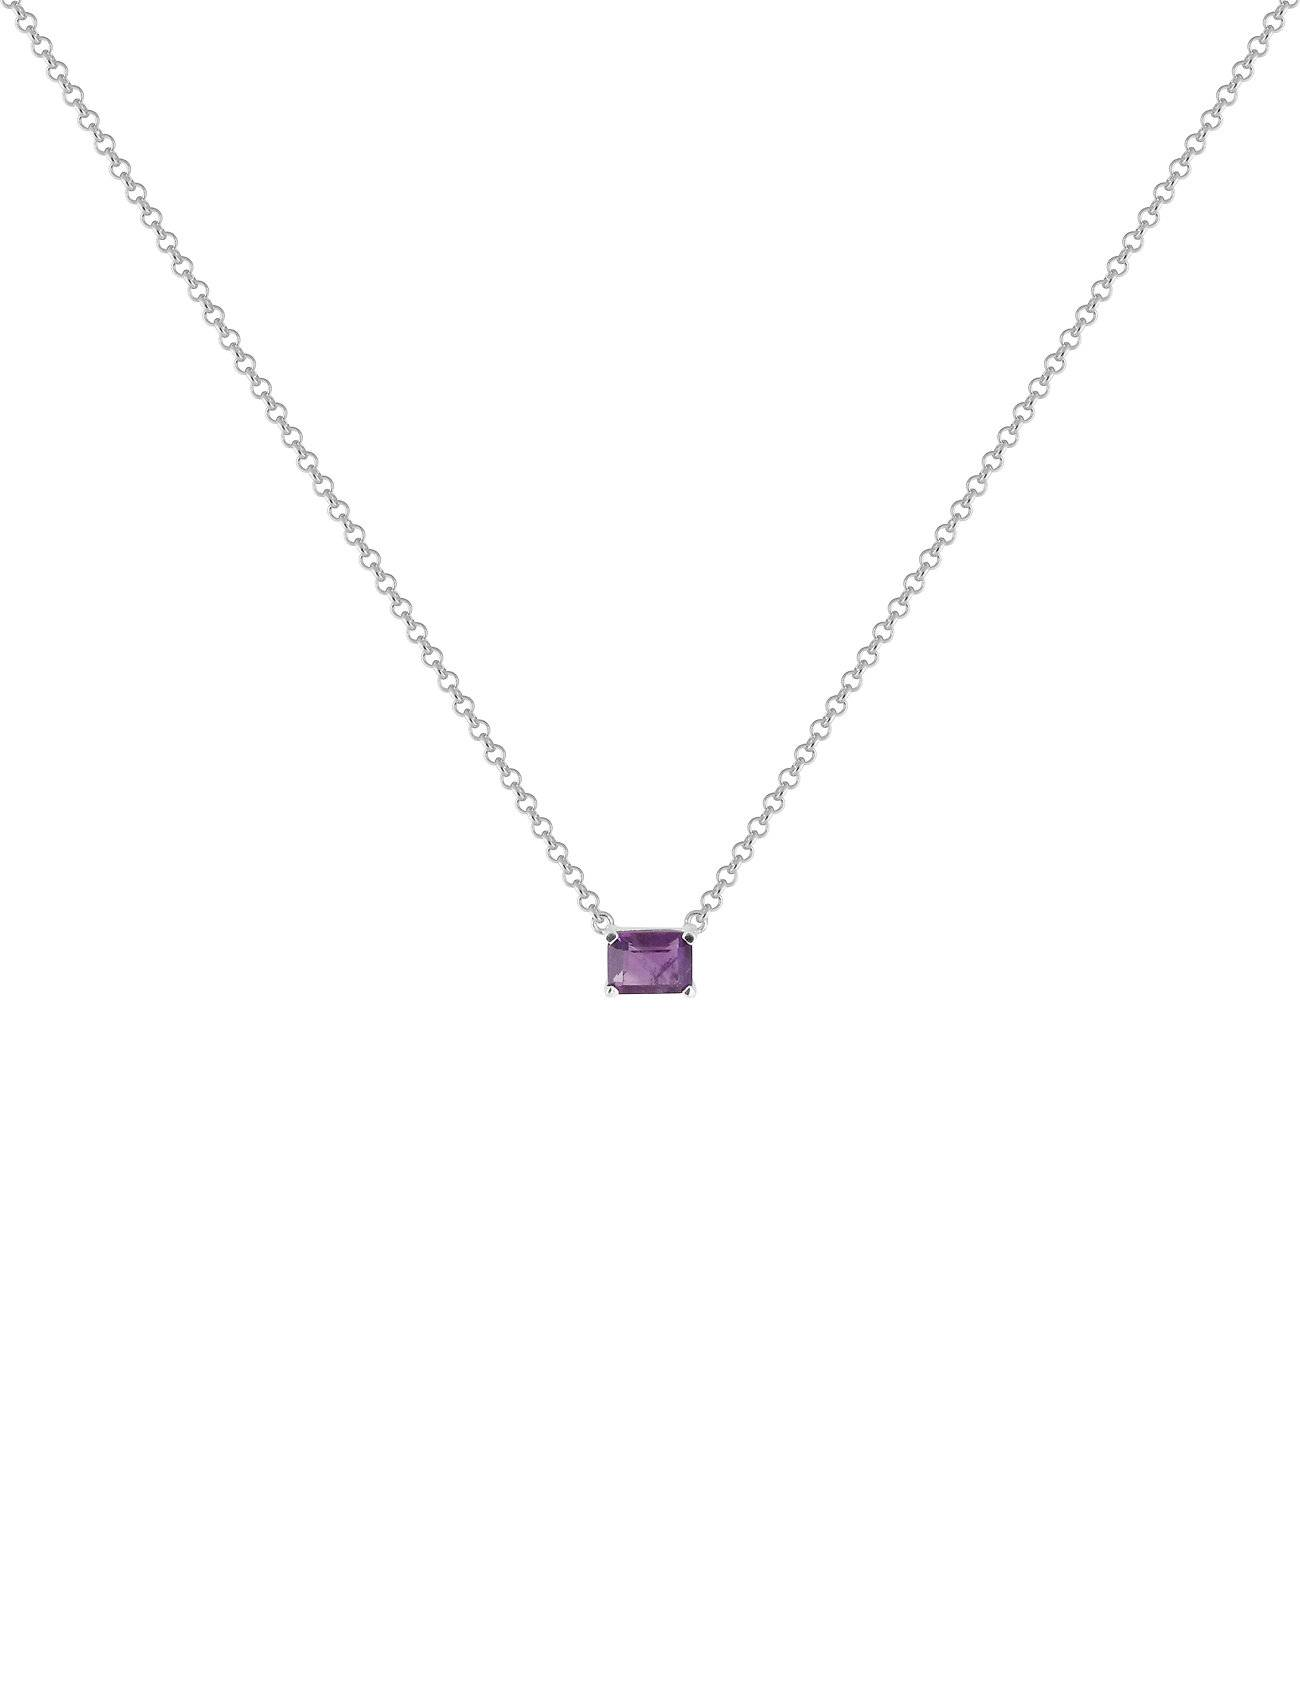 SOPHIE by SOPHIE Emerald-Cut Necklace Accessories Jewellery Necklaces Dainty Necklaces Hopea SOPHIE By SOPHIE